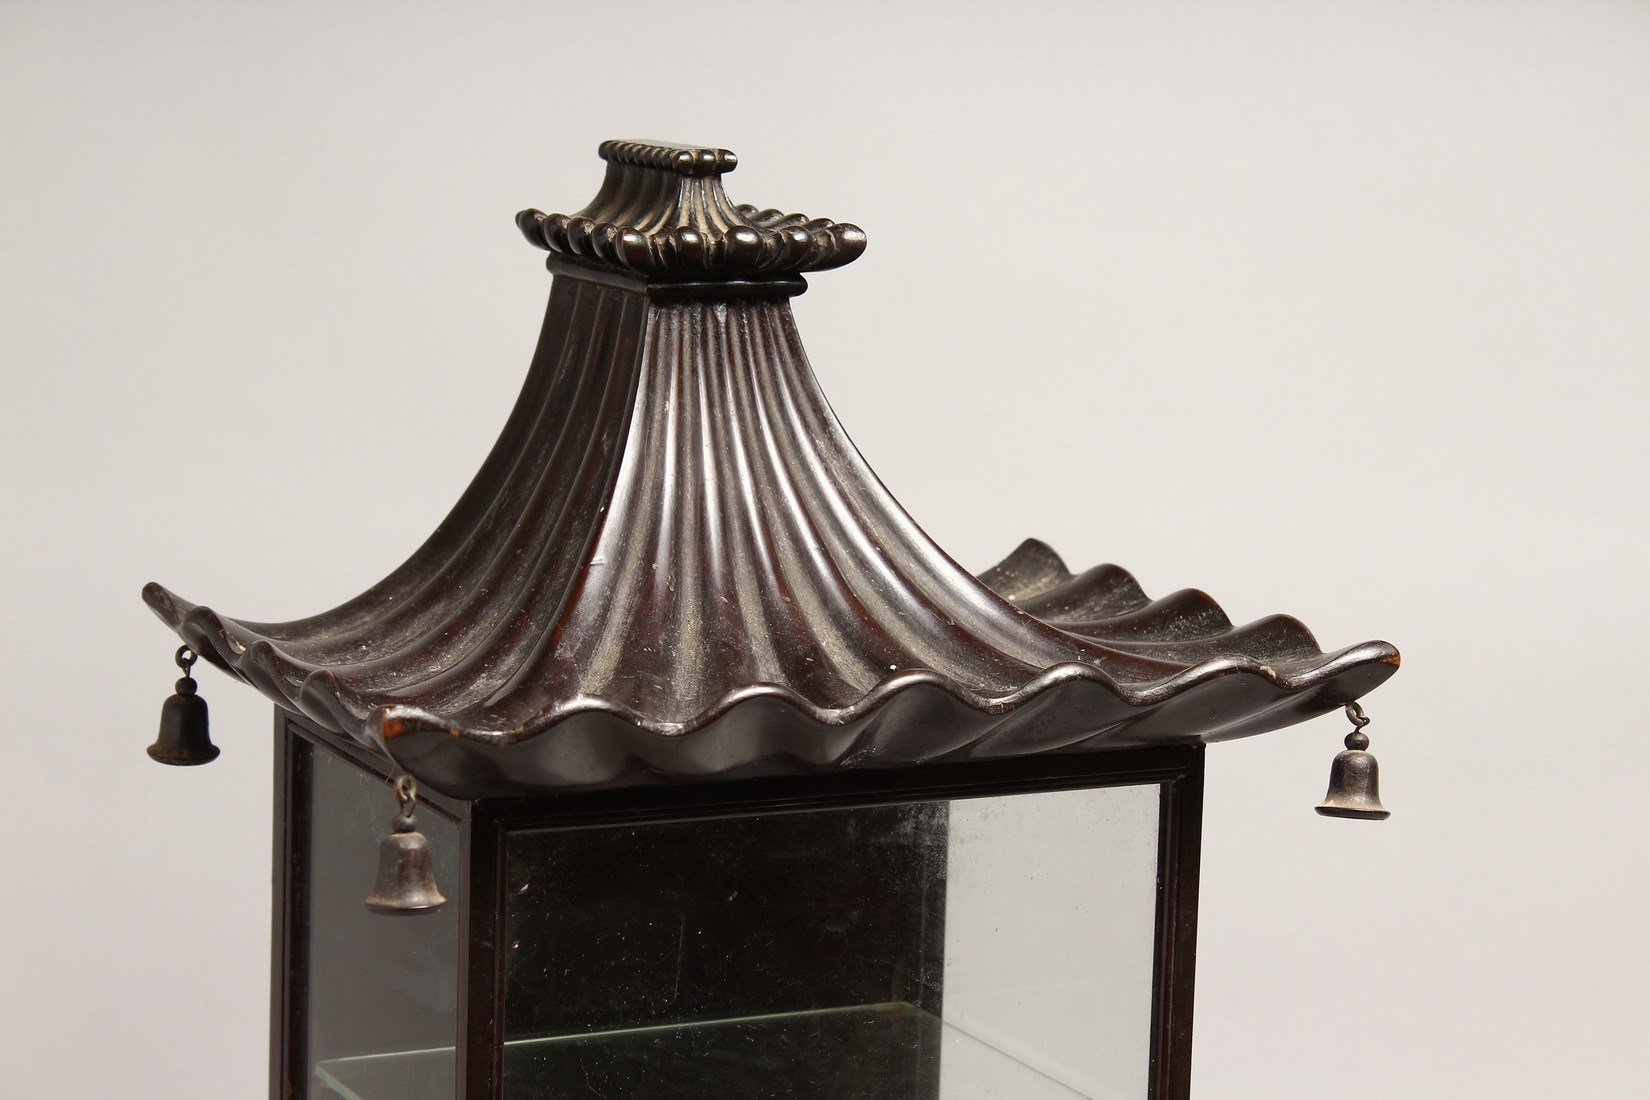 A GOOD GEORGIAN DESIGN CHINESE STYLE, SHOW CASE with Pagoda top hung with bells 20ins high, 8ins - Image 2 of 6